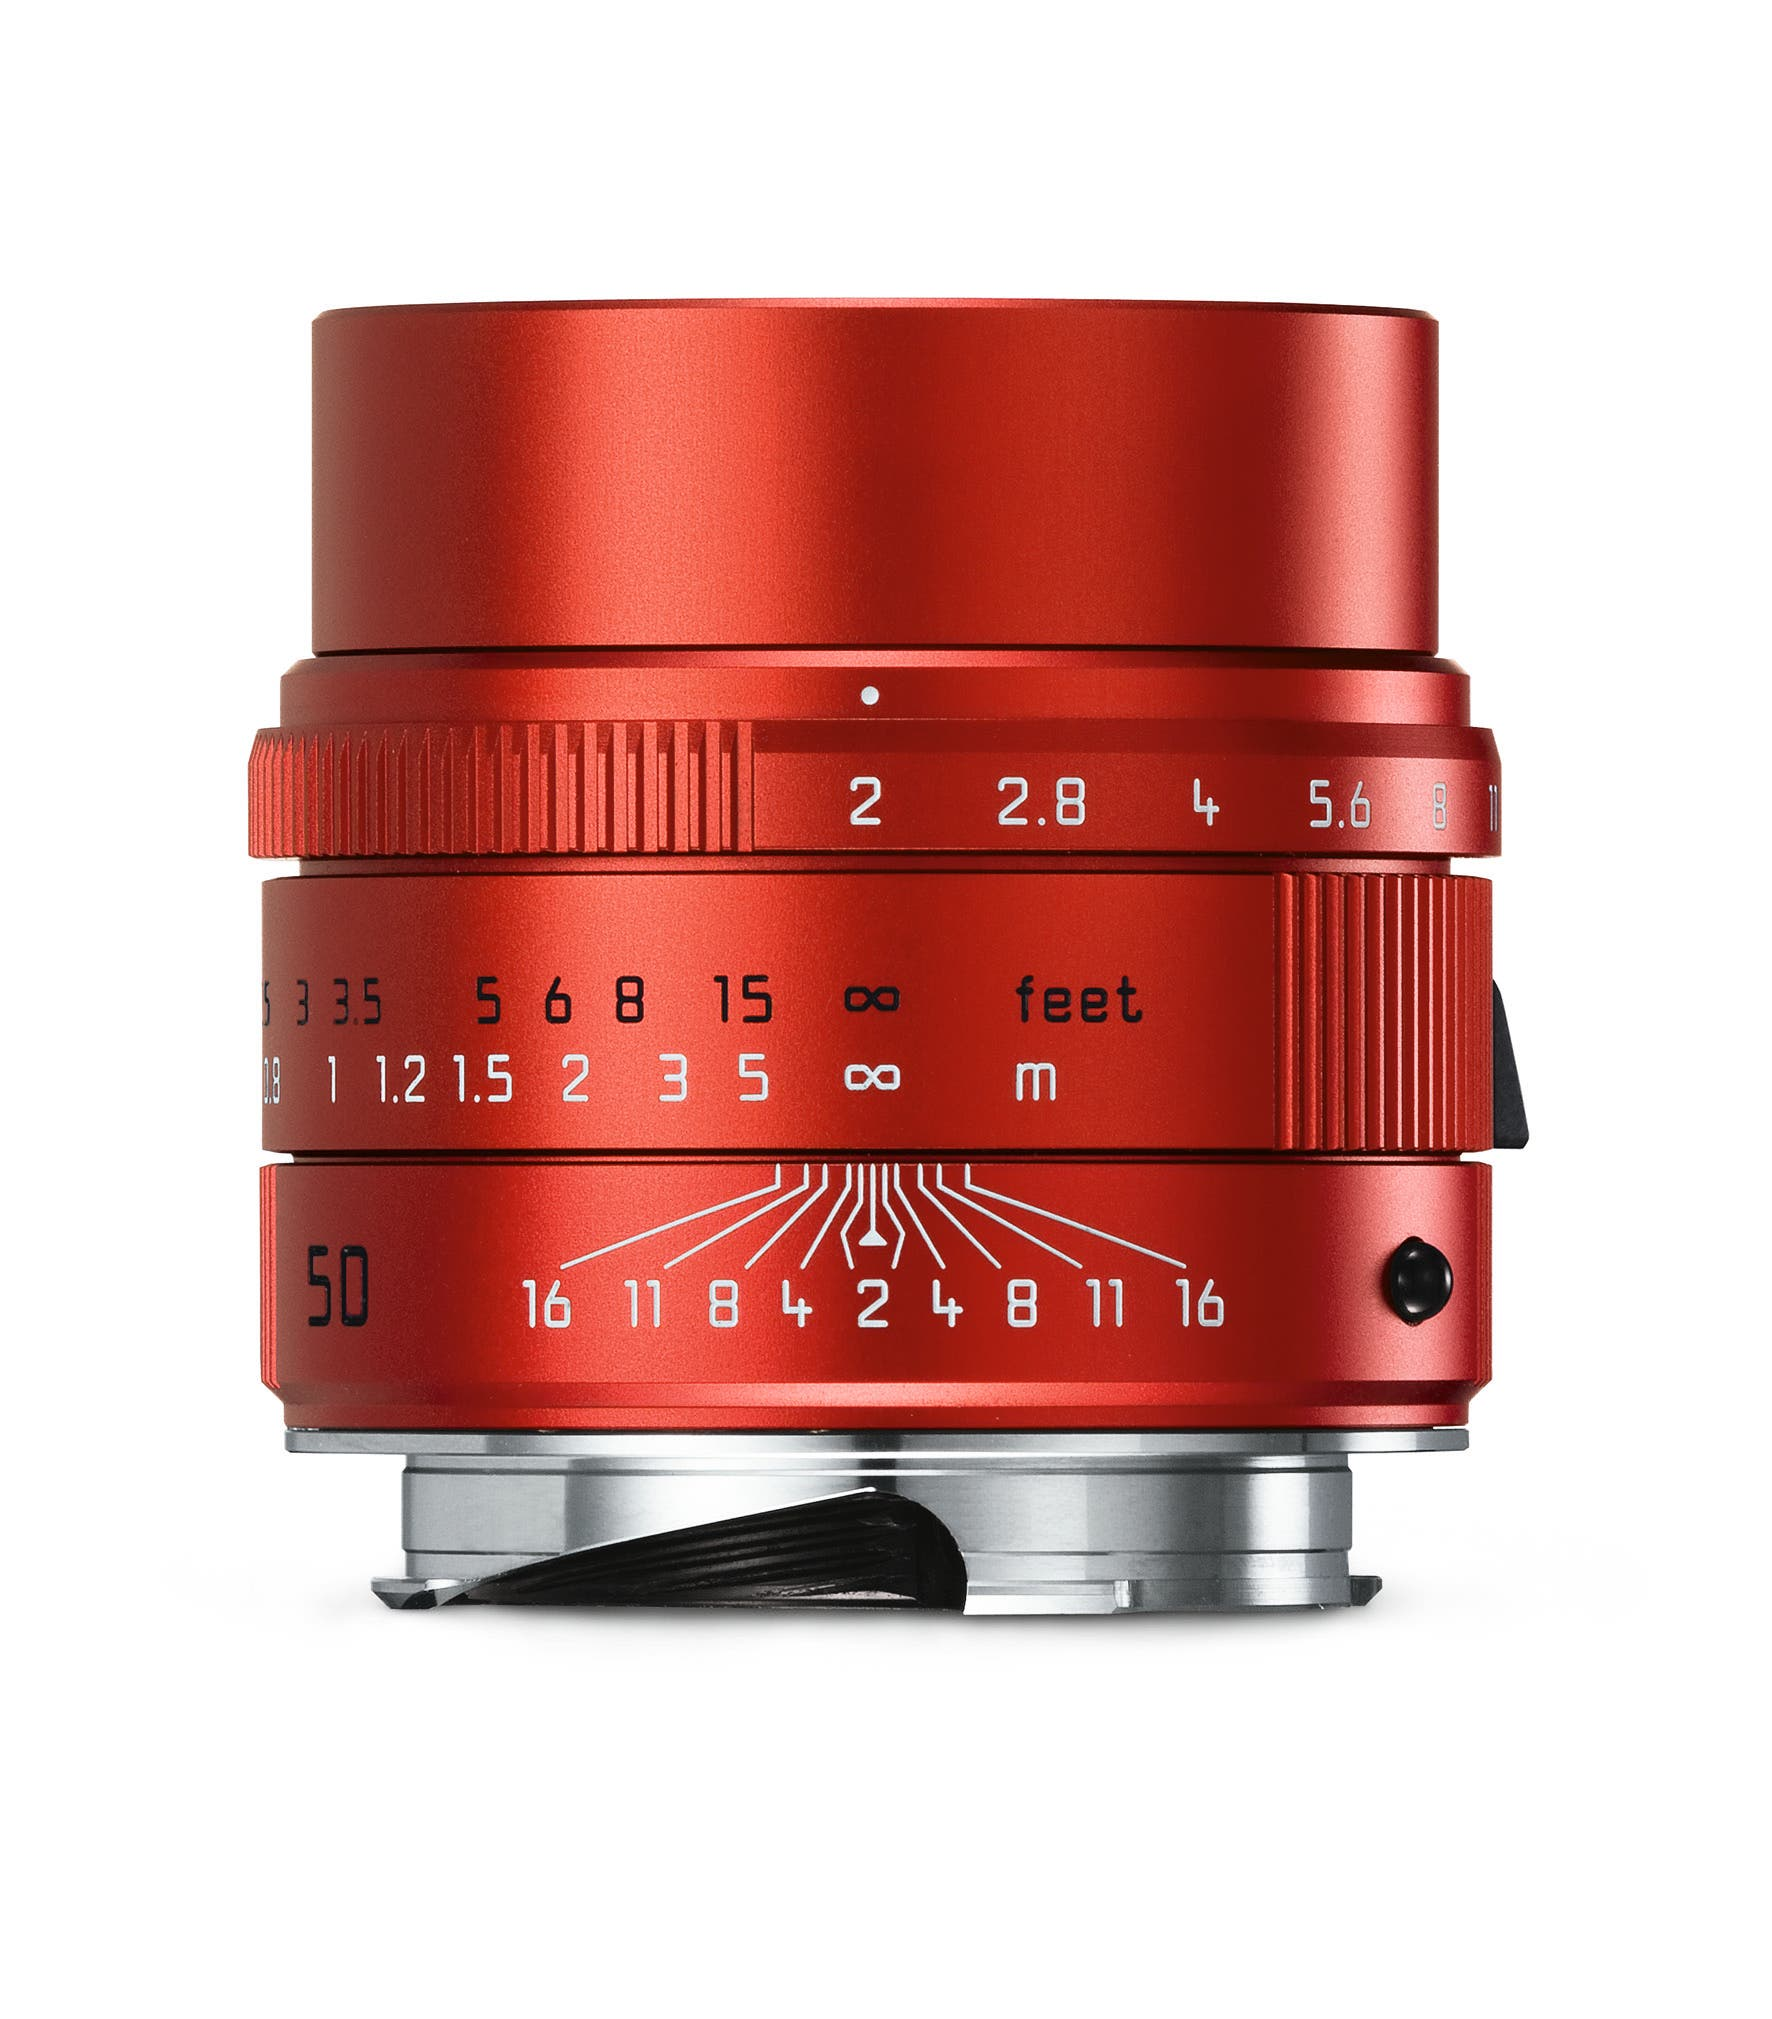 Leica Releases an APO-SUMMICRON-M 50mm f2 ASPH With a Red Finish (No, They Really Did This…)